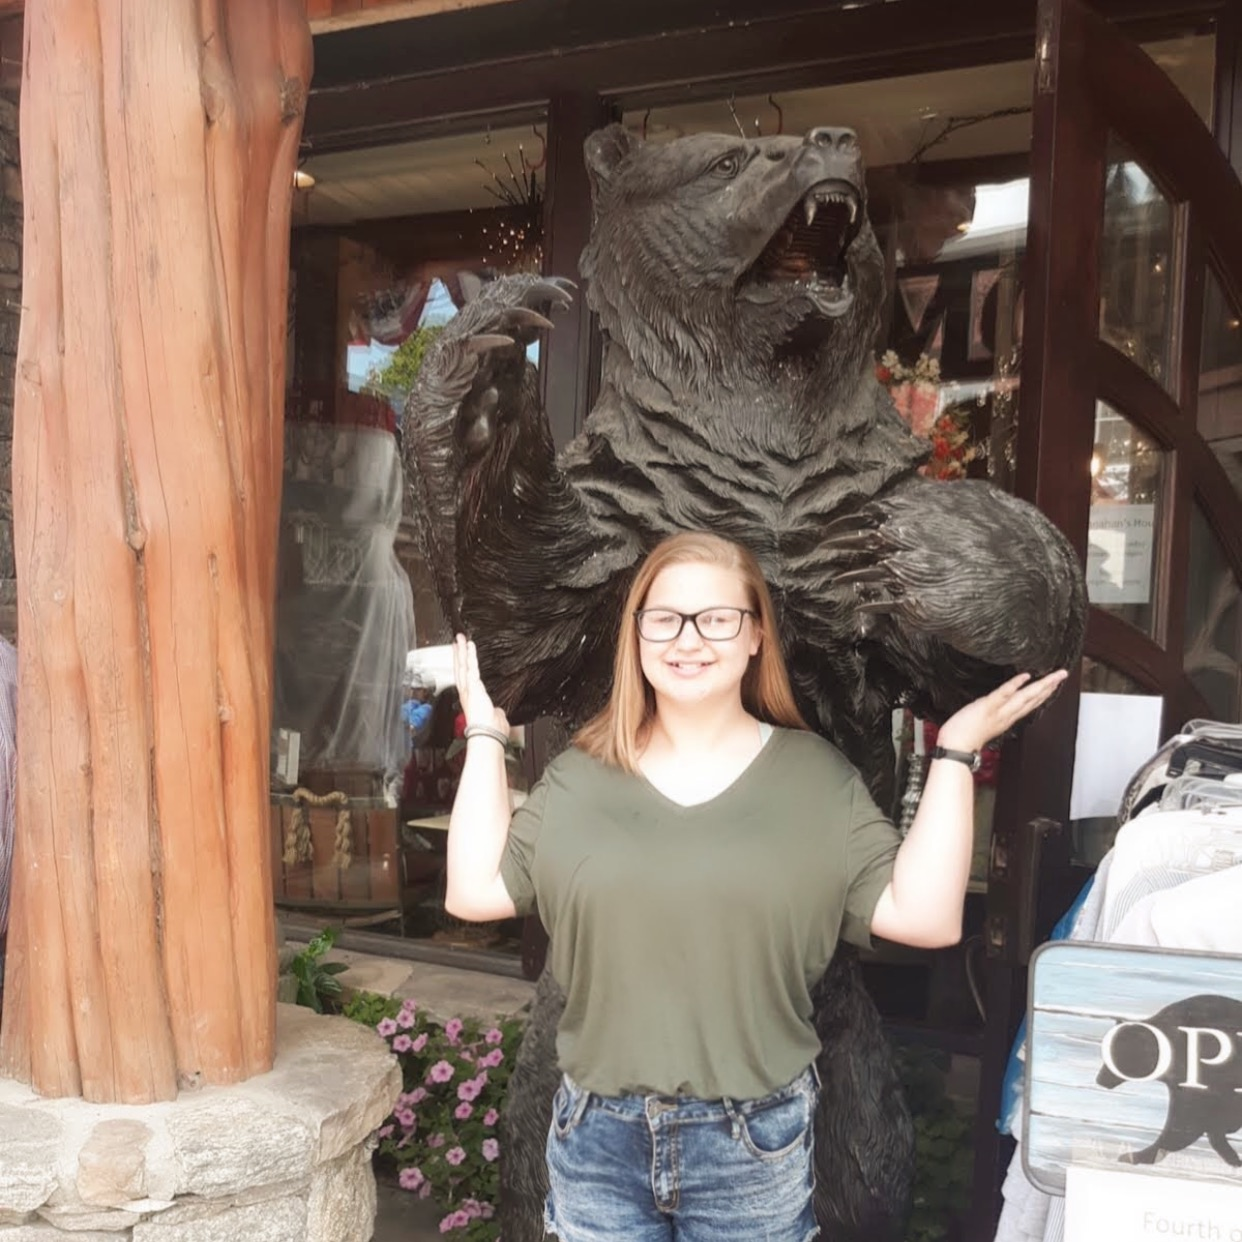 Sara+Hebert%2C+a+new+student+here+at+Pelahatchie+High%2C+poses+in+front+of+a+bear+statue%2C+somewhat+mocking+the+bear%E2%80%99s+pose.+